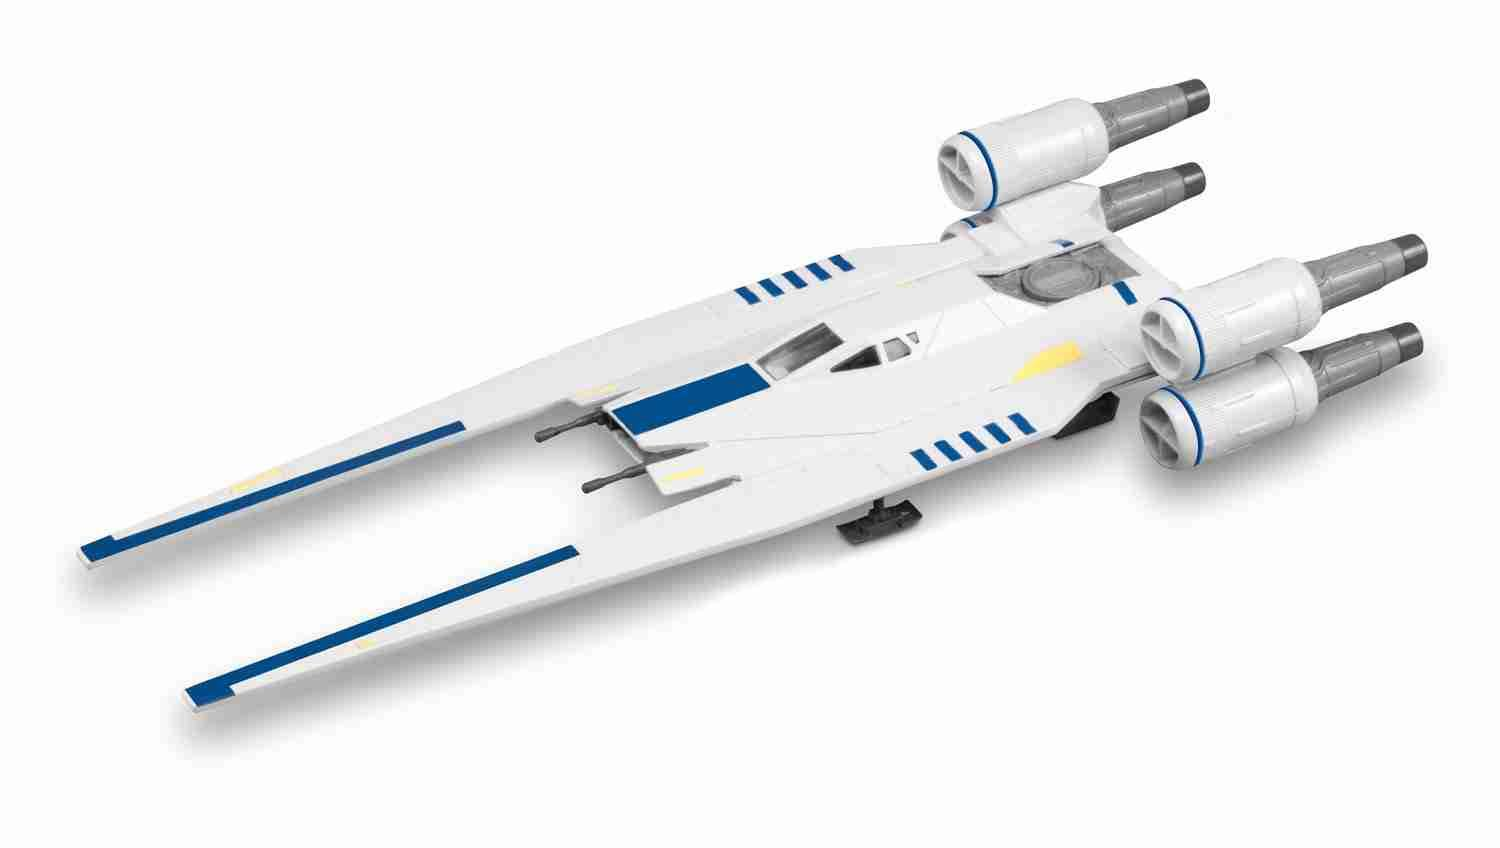 Revell SnapTite Build and Play Rebel U-wing Fighter Building Kit